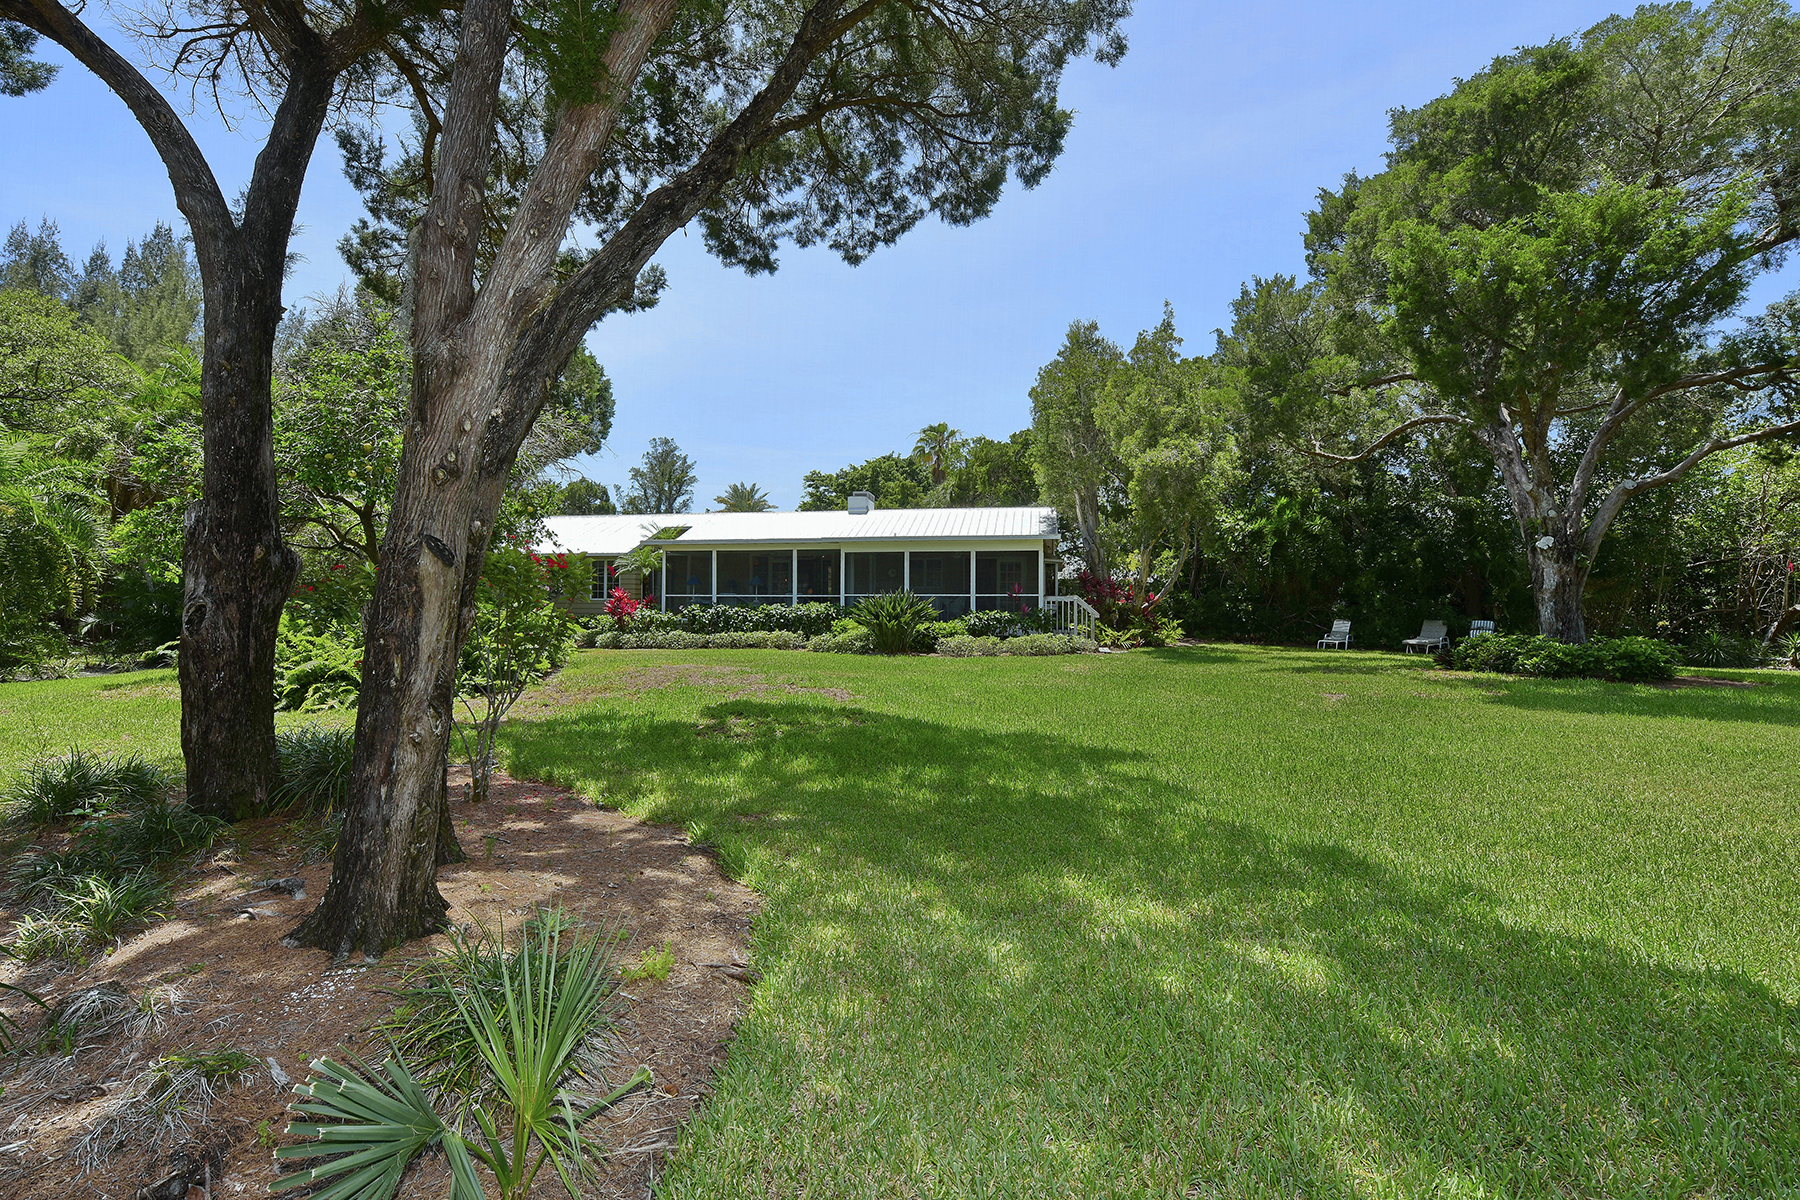 Casa Unifamiliar por un Venta en LONGBOAT KEY 4 ACRES 6680 Gulf Of Mexico Dr Longboat Key, Florida 34228 Estados Unidos